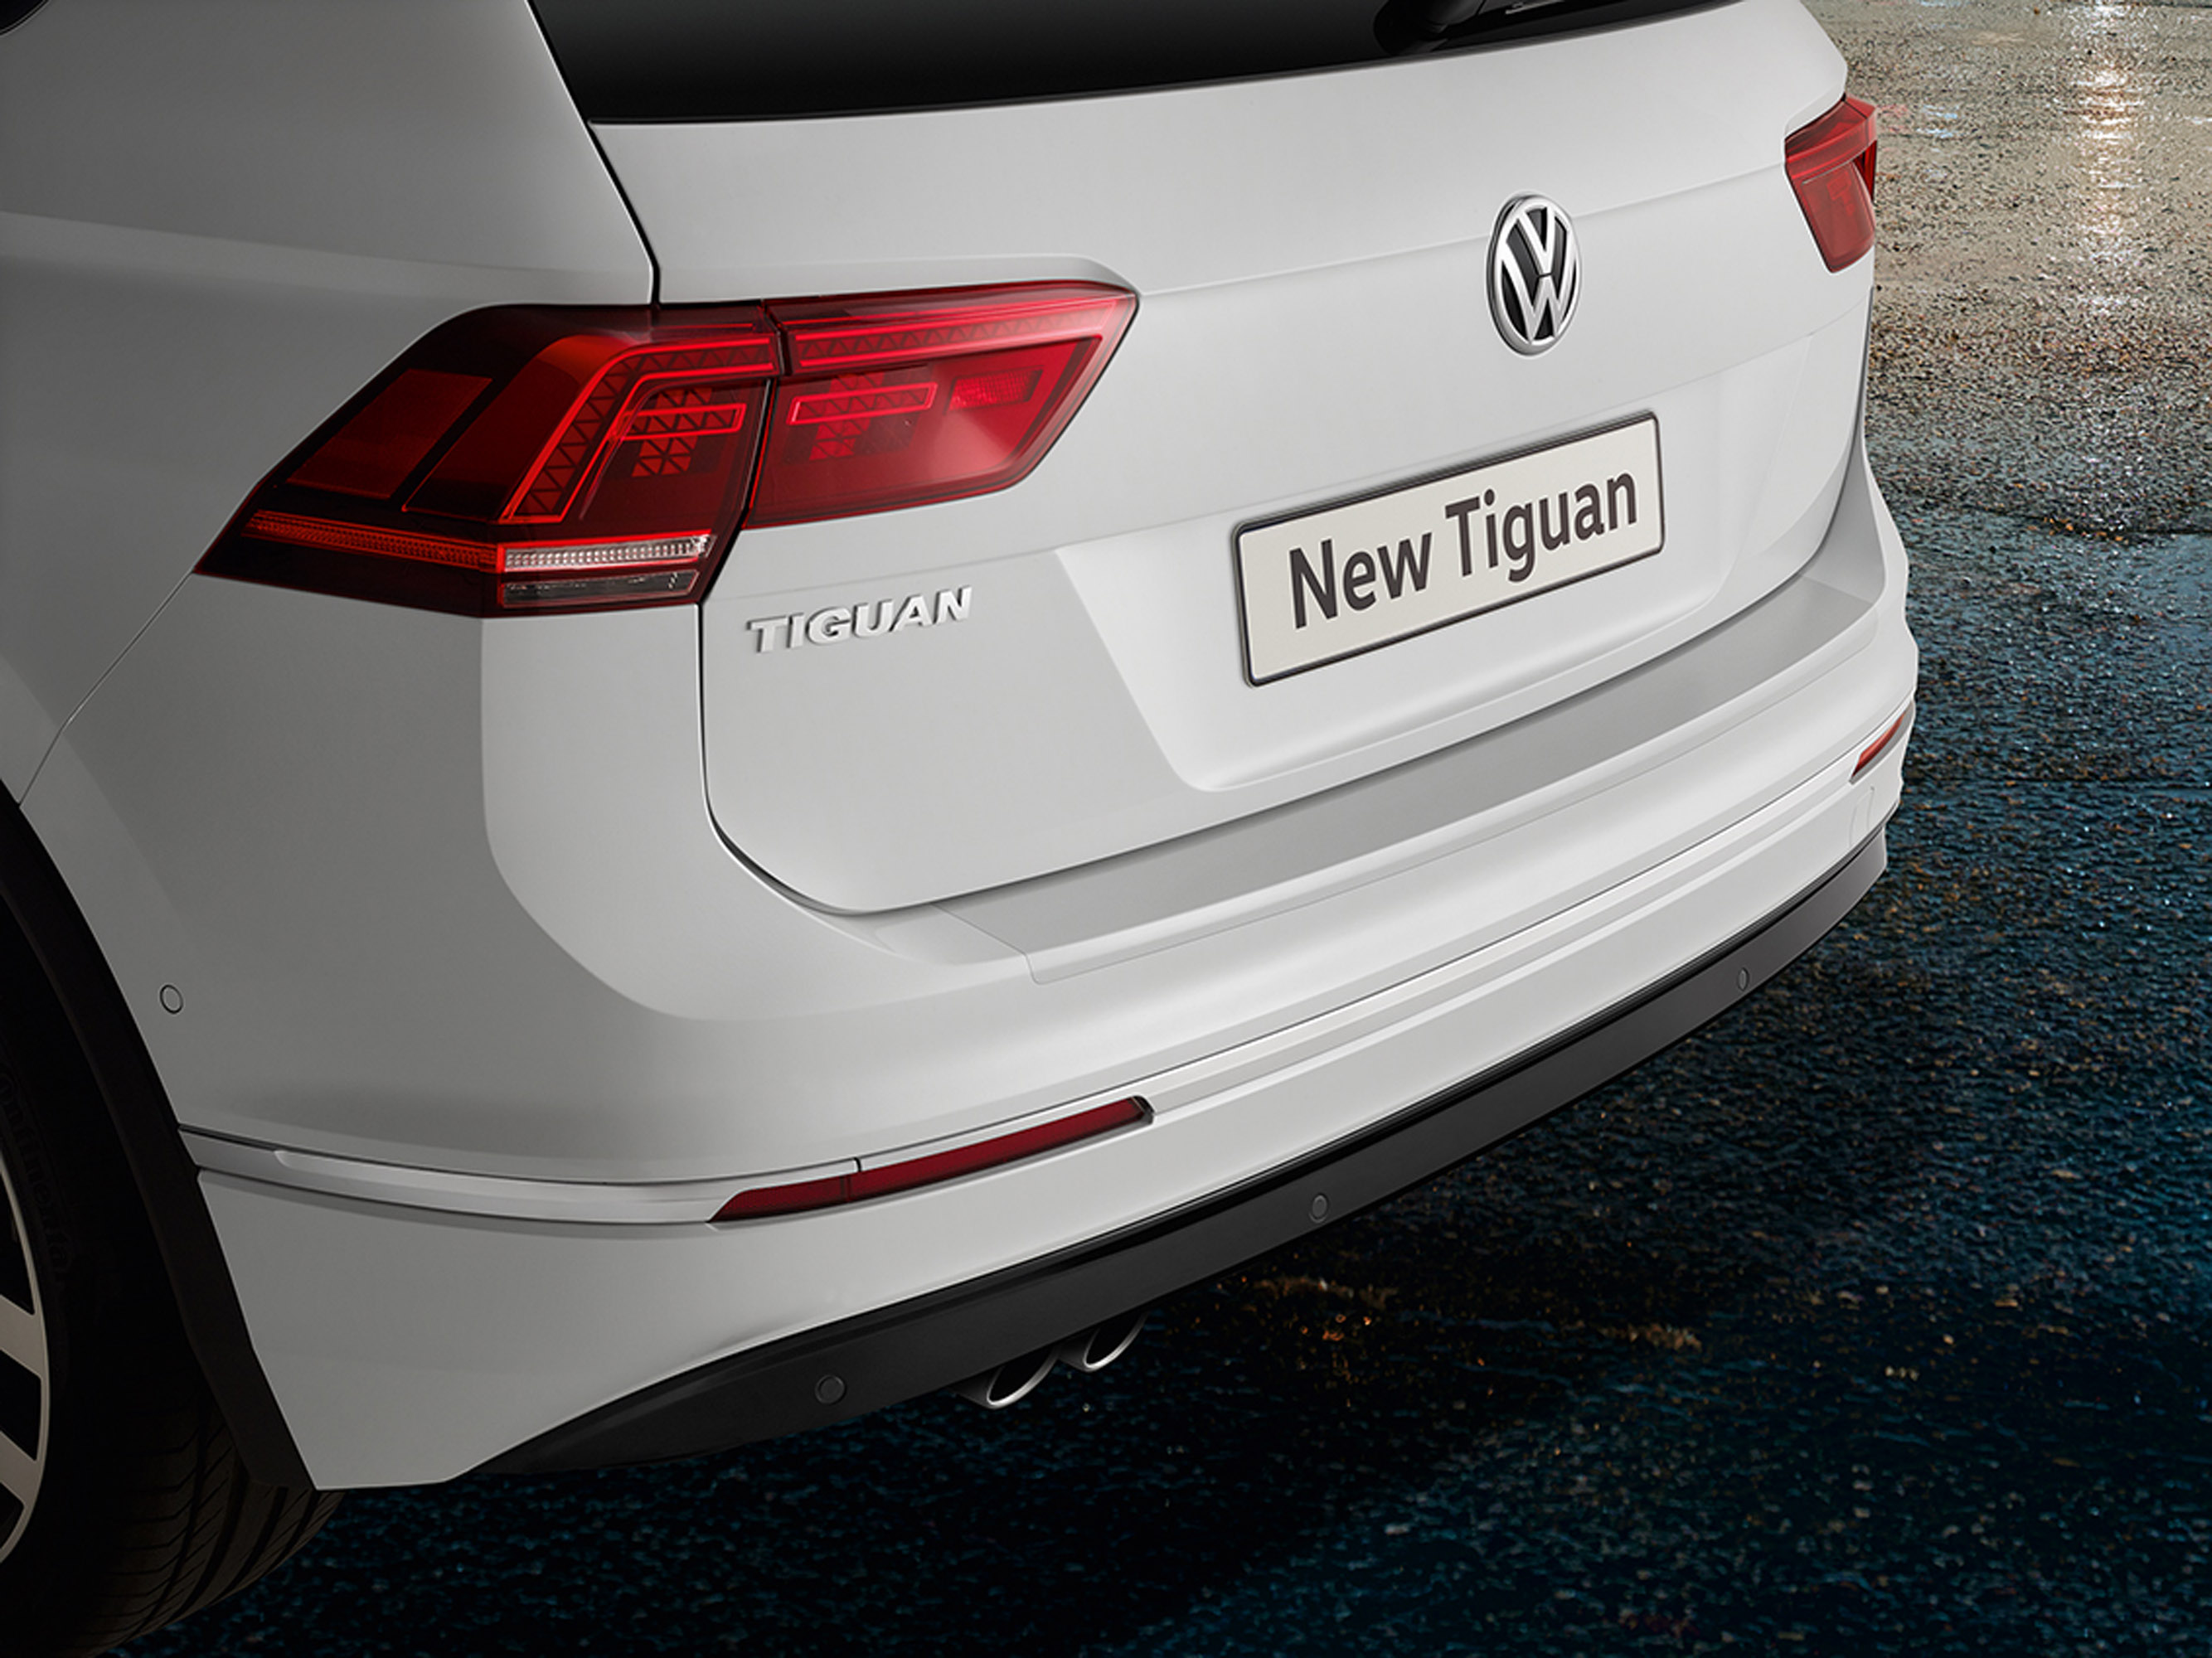 VW Tiguan comes with tons of customizable features!